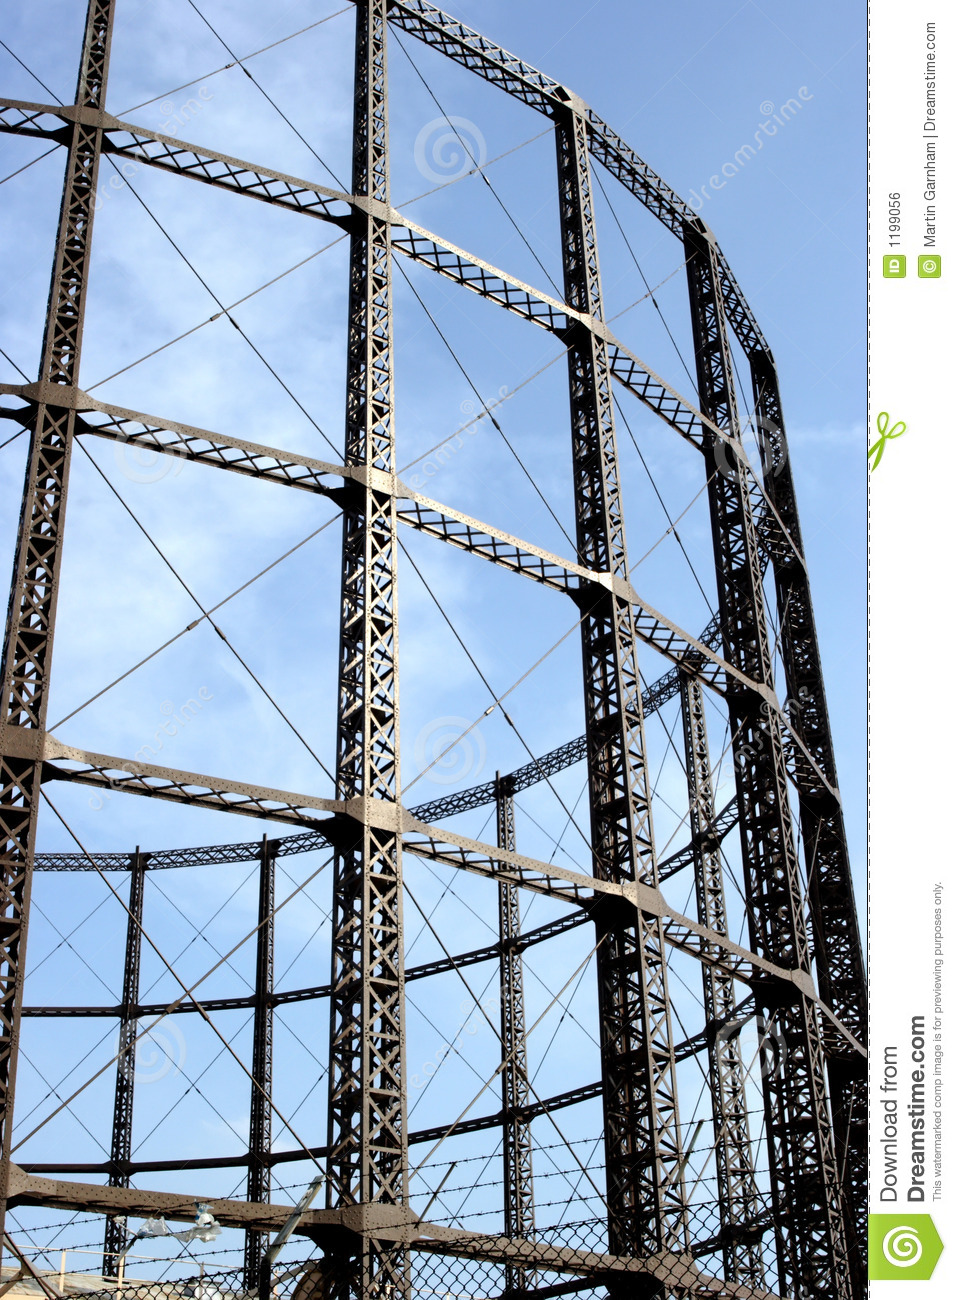 a steel frame of a gas tower